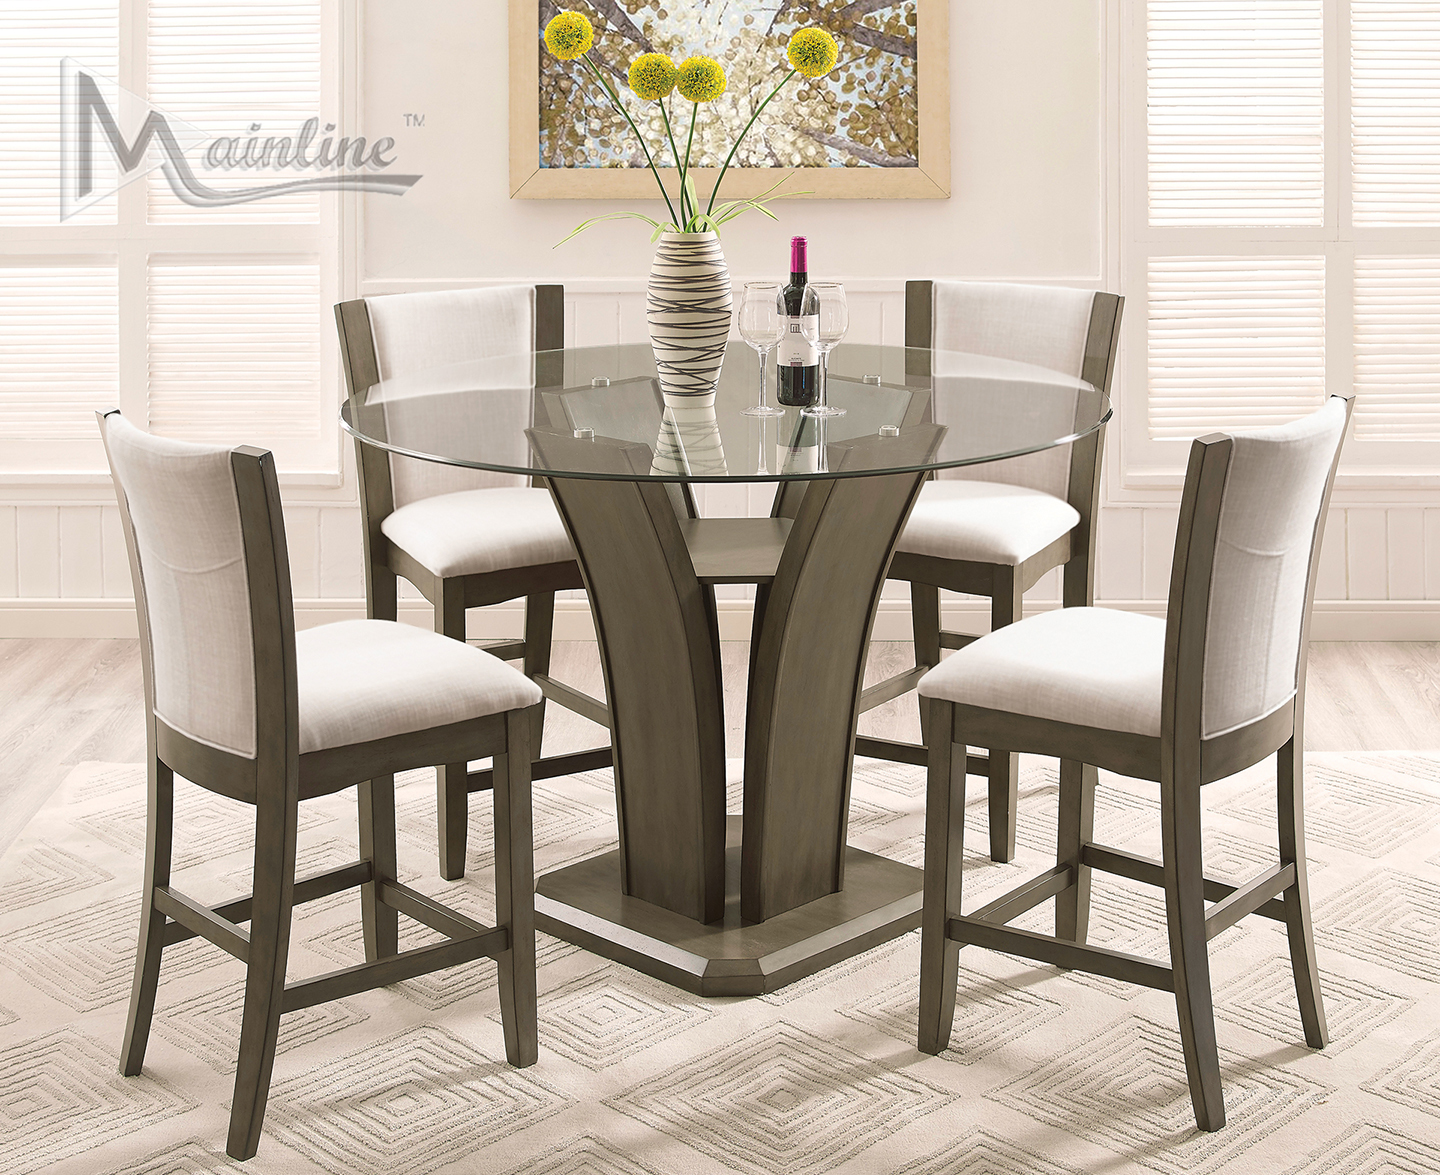 Enclave Gray Table 4 Chairs 22112 42 Mainline Inc Counter Height Dining Sets Counter Height Dining Table Set High Dining Table Dining Room Sets